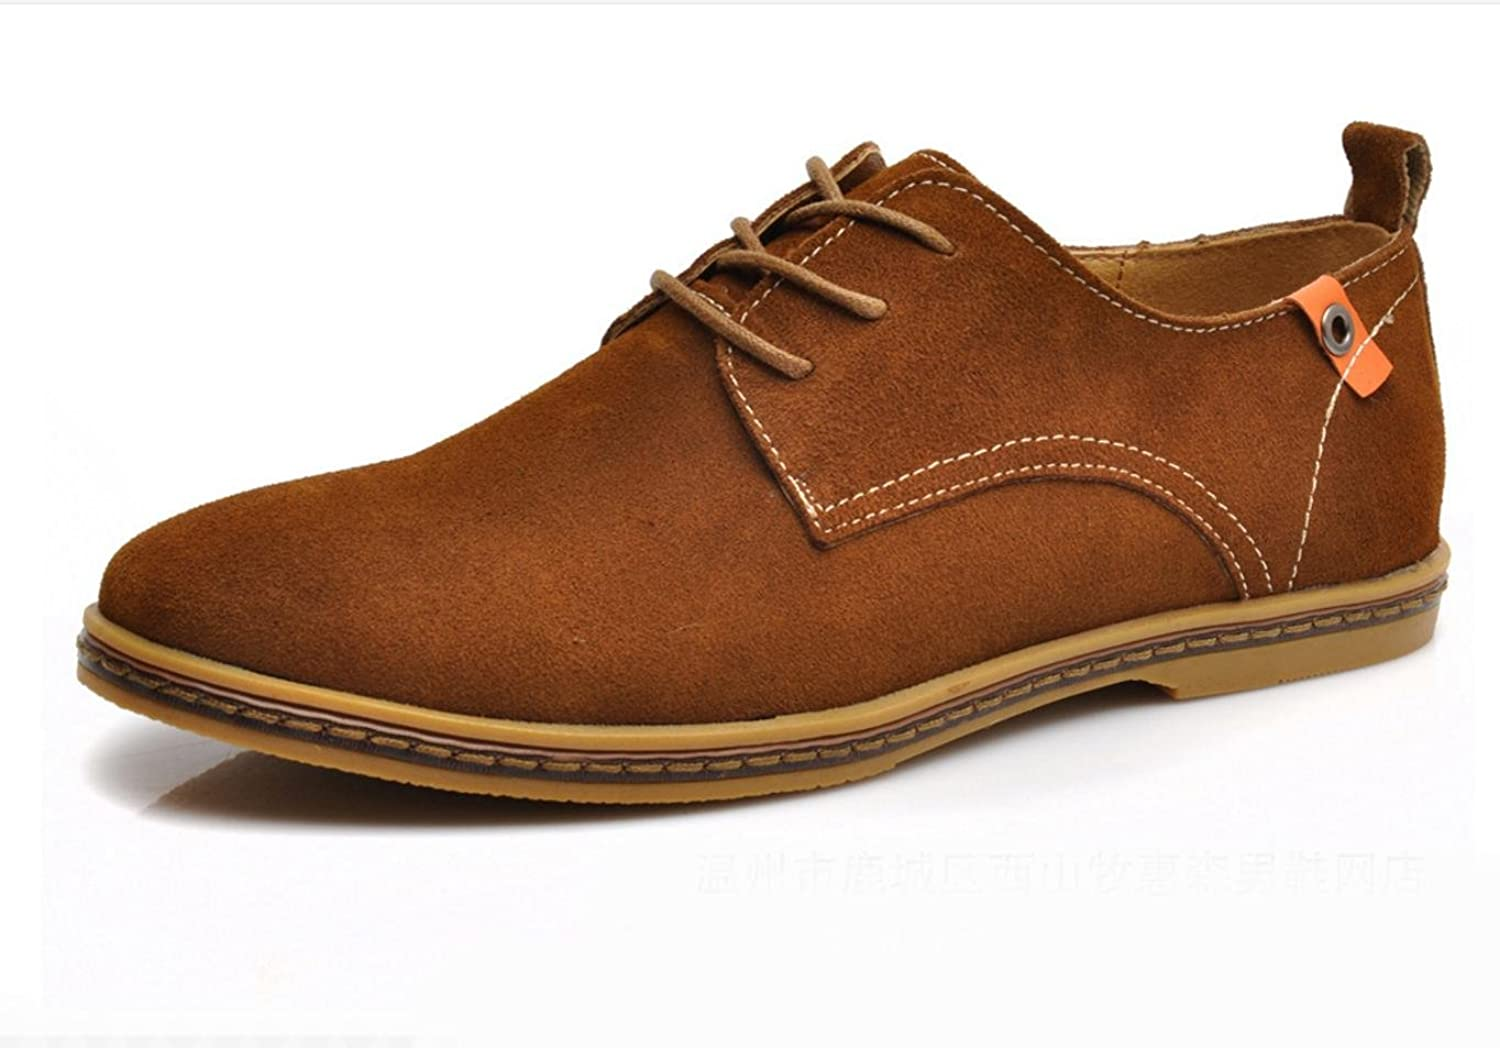 WZG New fall men 's fashion suede leather men' s shoes casual shoes flat shoes 9.5 , orange , 43